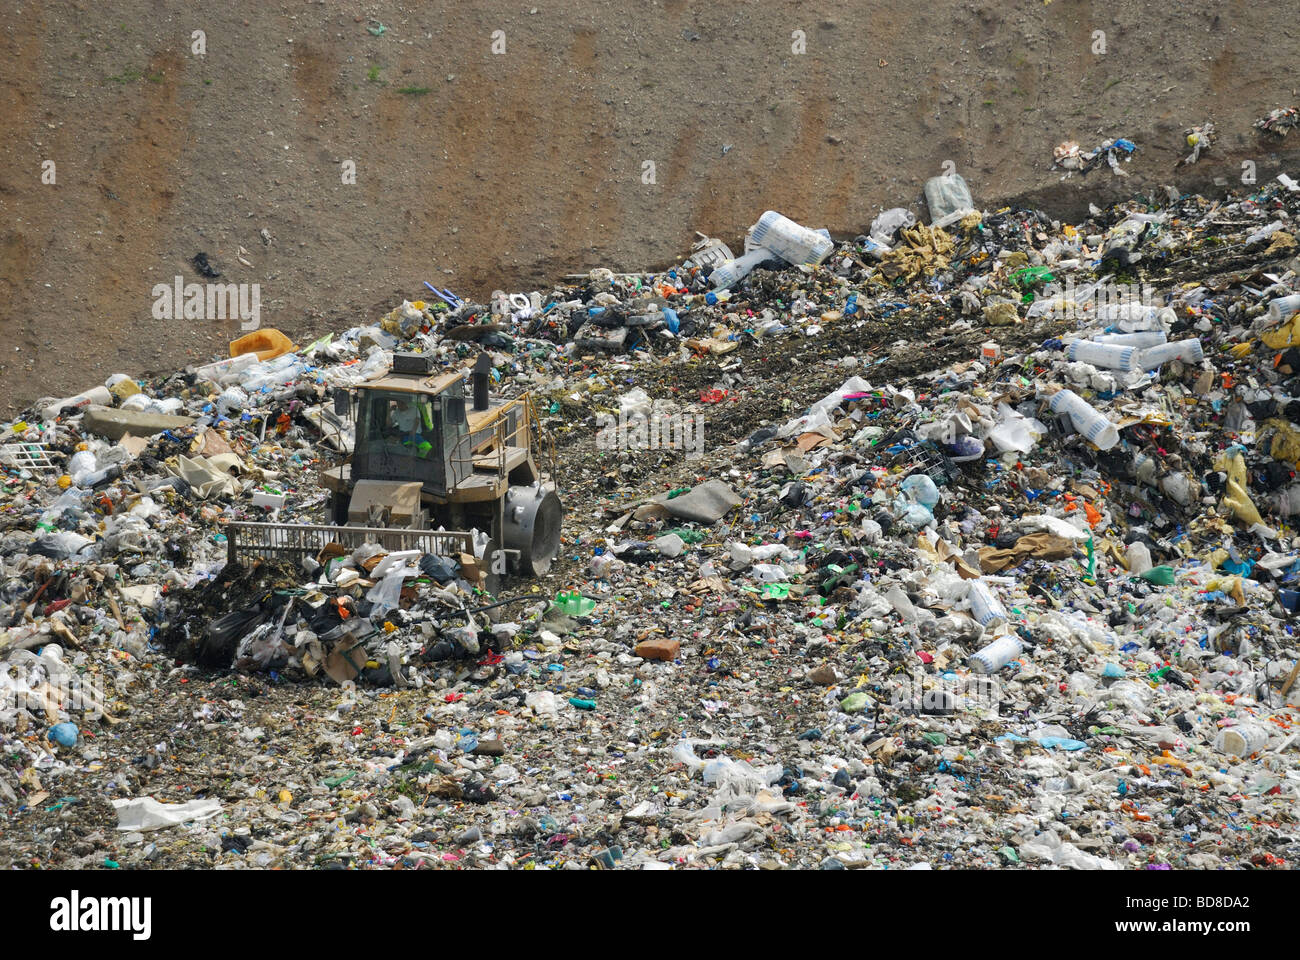 A tractor compactor working in a landfill site in France. (Lorraine region) - Stock Image